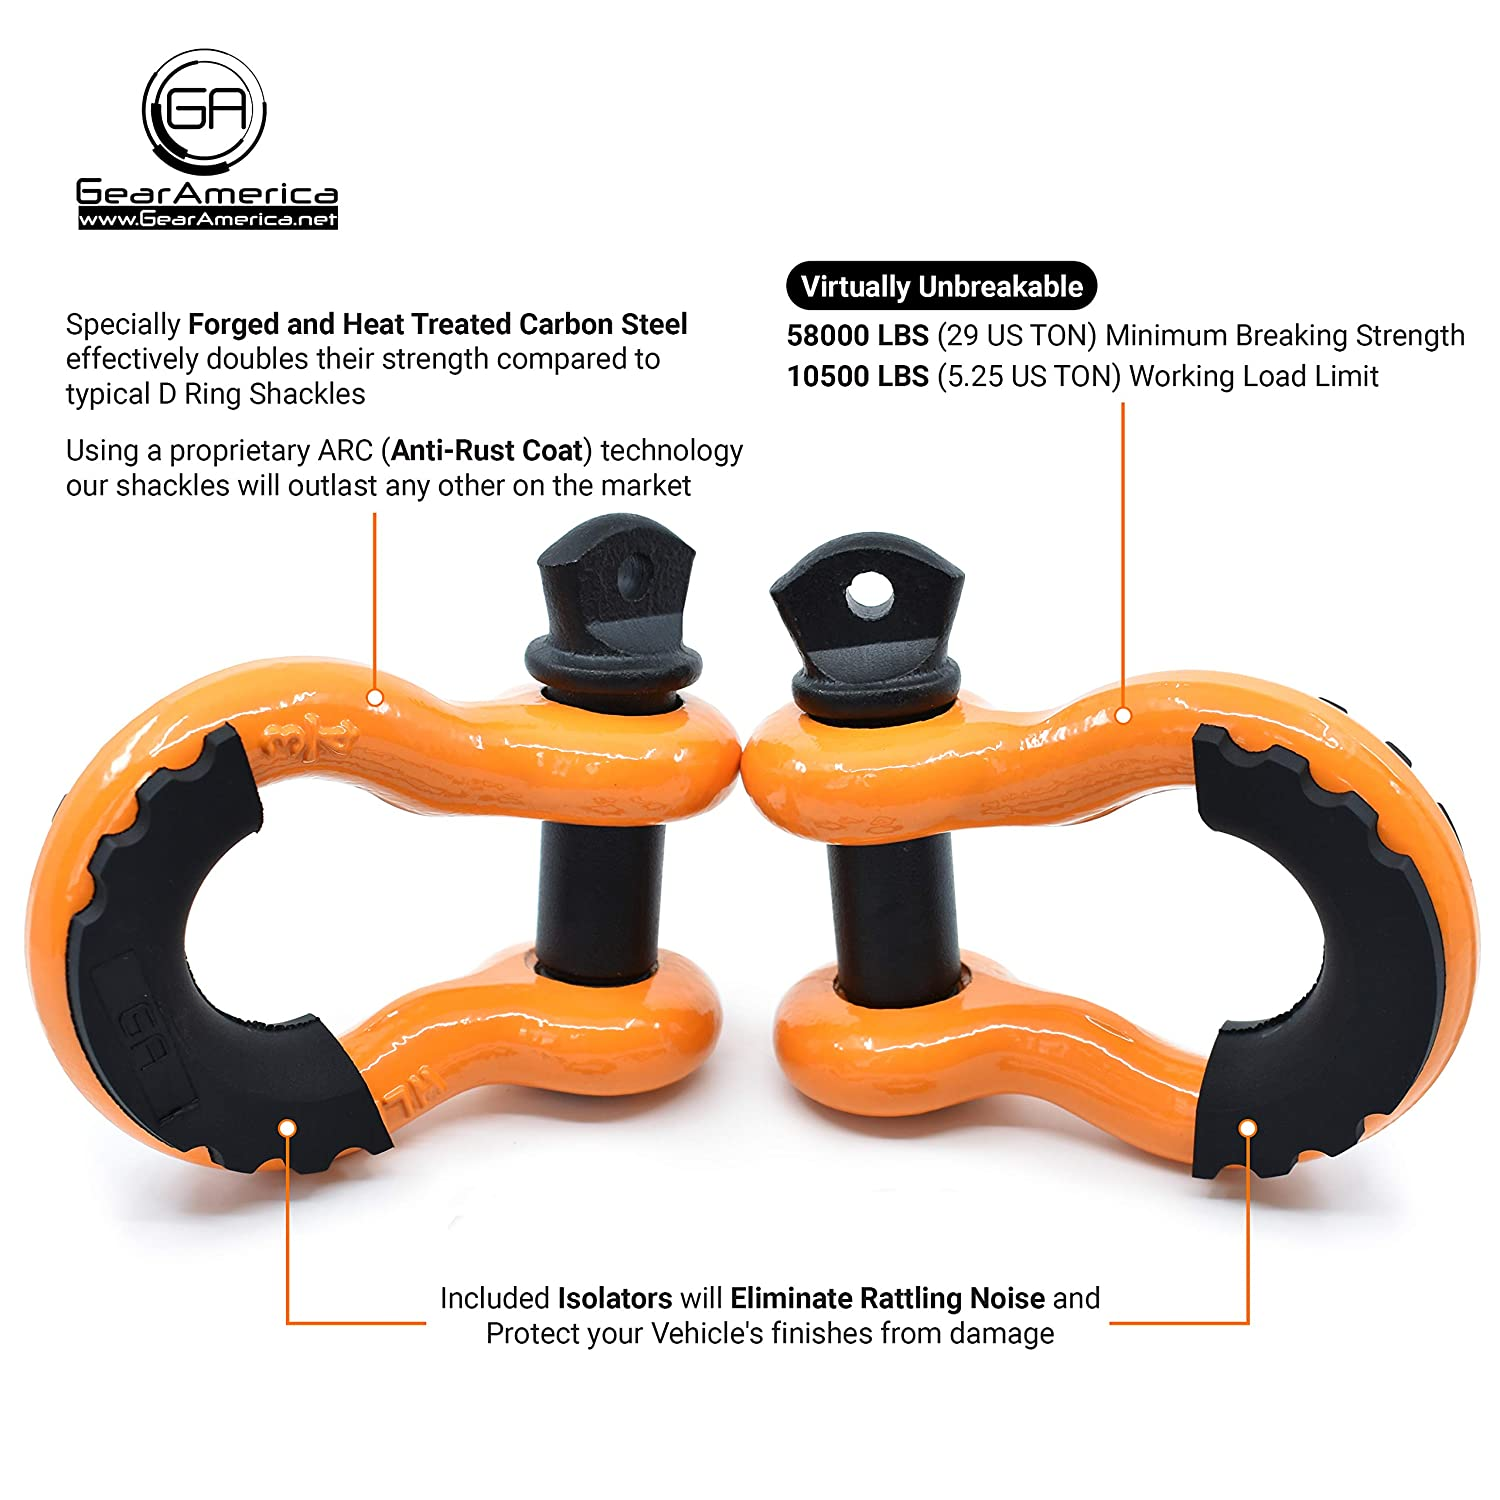 3//4 Shackle GearAmerica 29 US Ton Washers Max Strength Isolator Connect Your Tow Strap or Winch Rope for Off-Road 4x4 Recovery 7//8 Pin 2PK Heavy Duty D Ring Shackles Red | 58,000 lbs